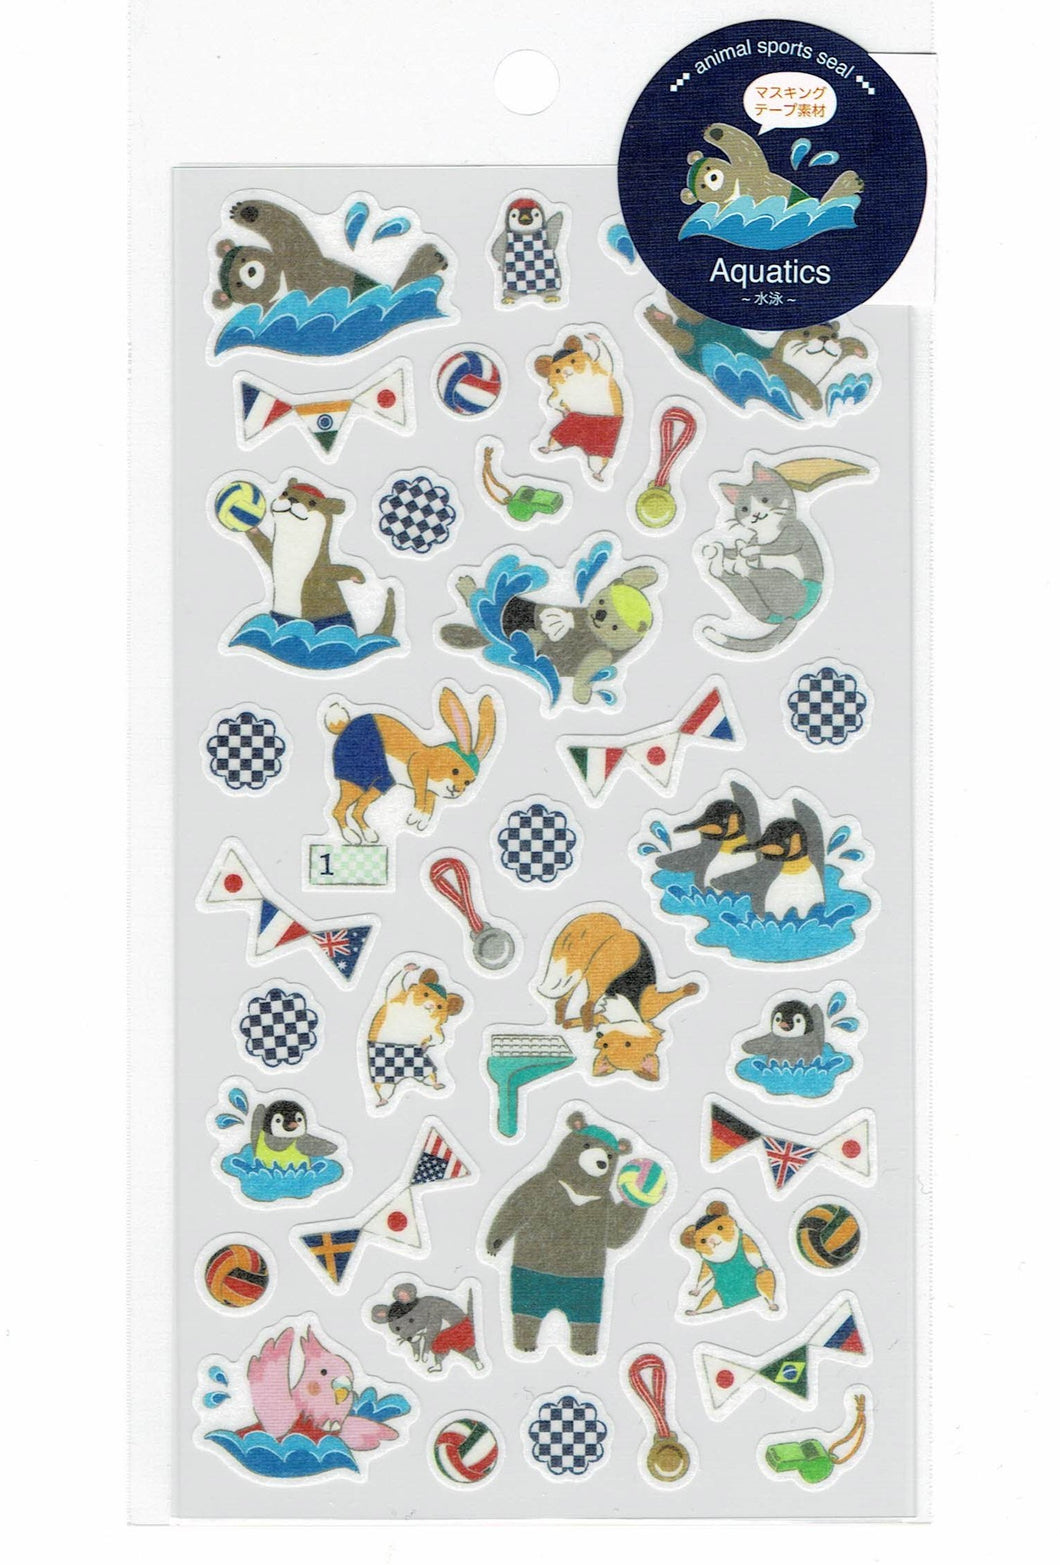 Cockatiel Penguin Sea Otter Rabbit Cat Fox Bear Stickers Swimming - Boutique SWEET BIRDIE